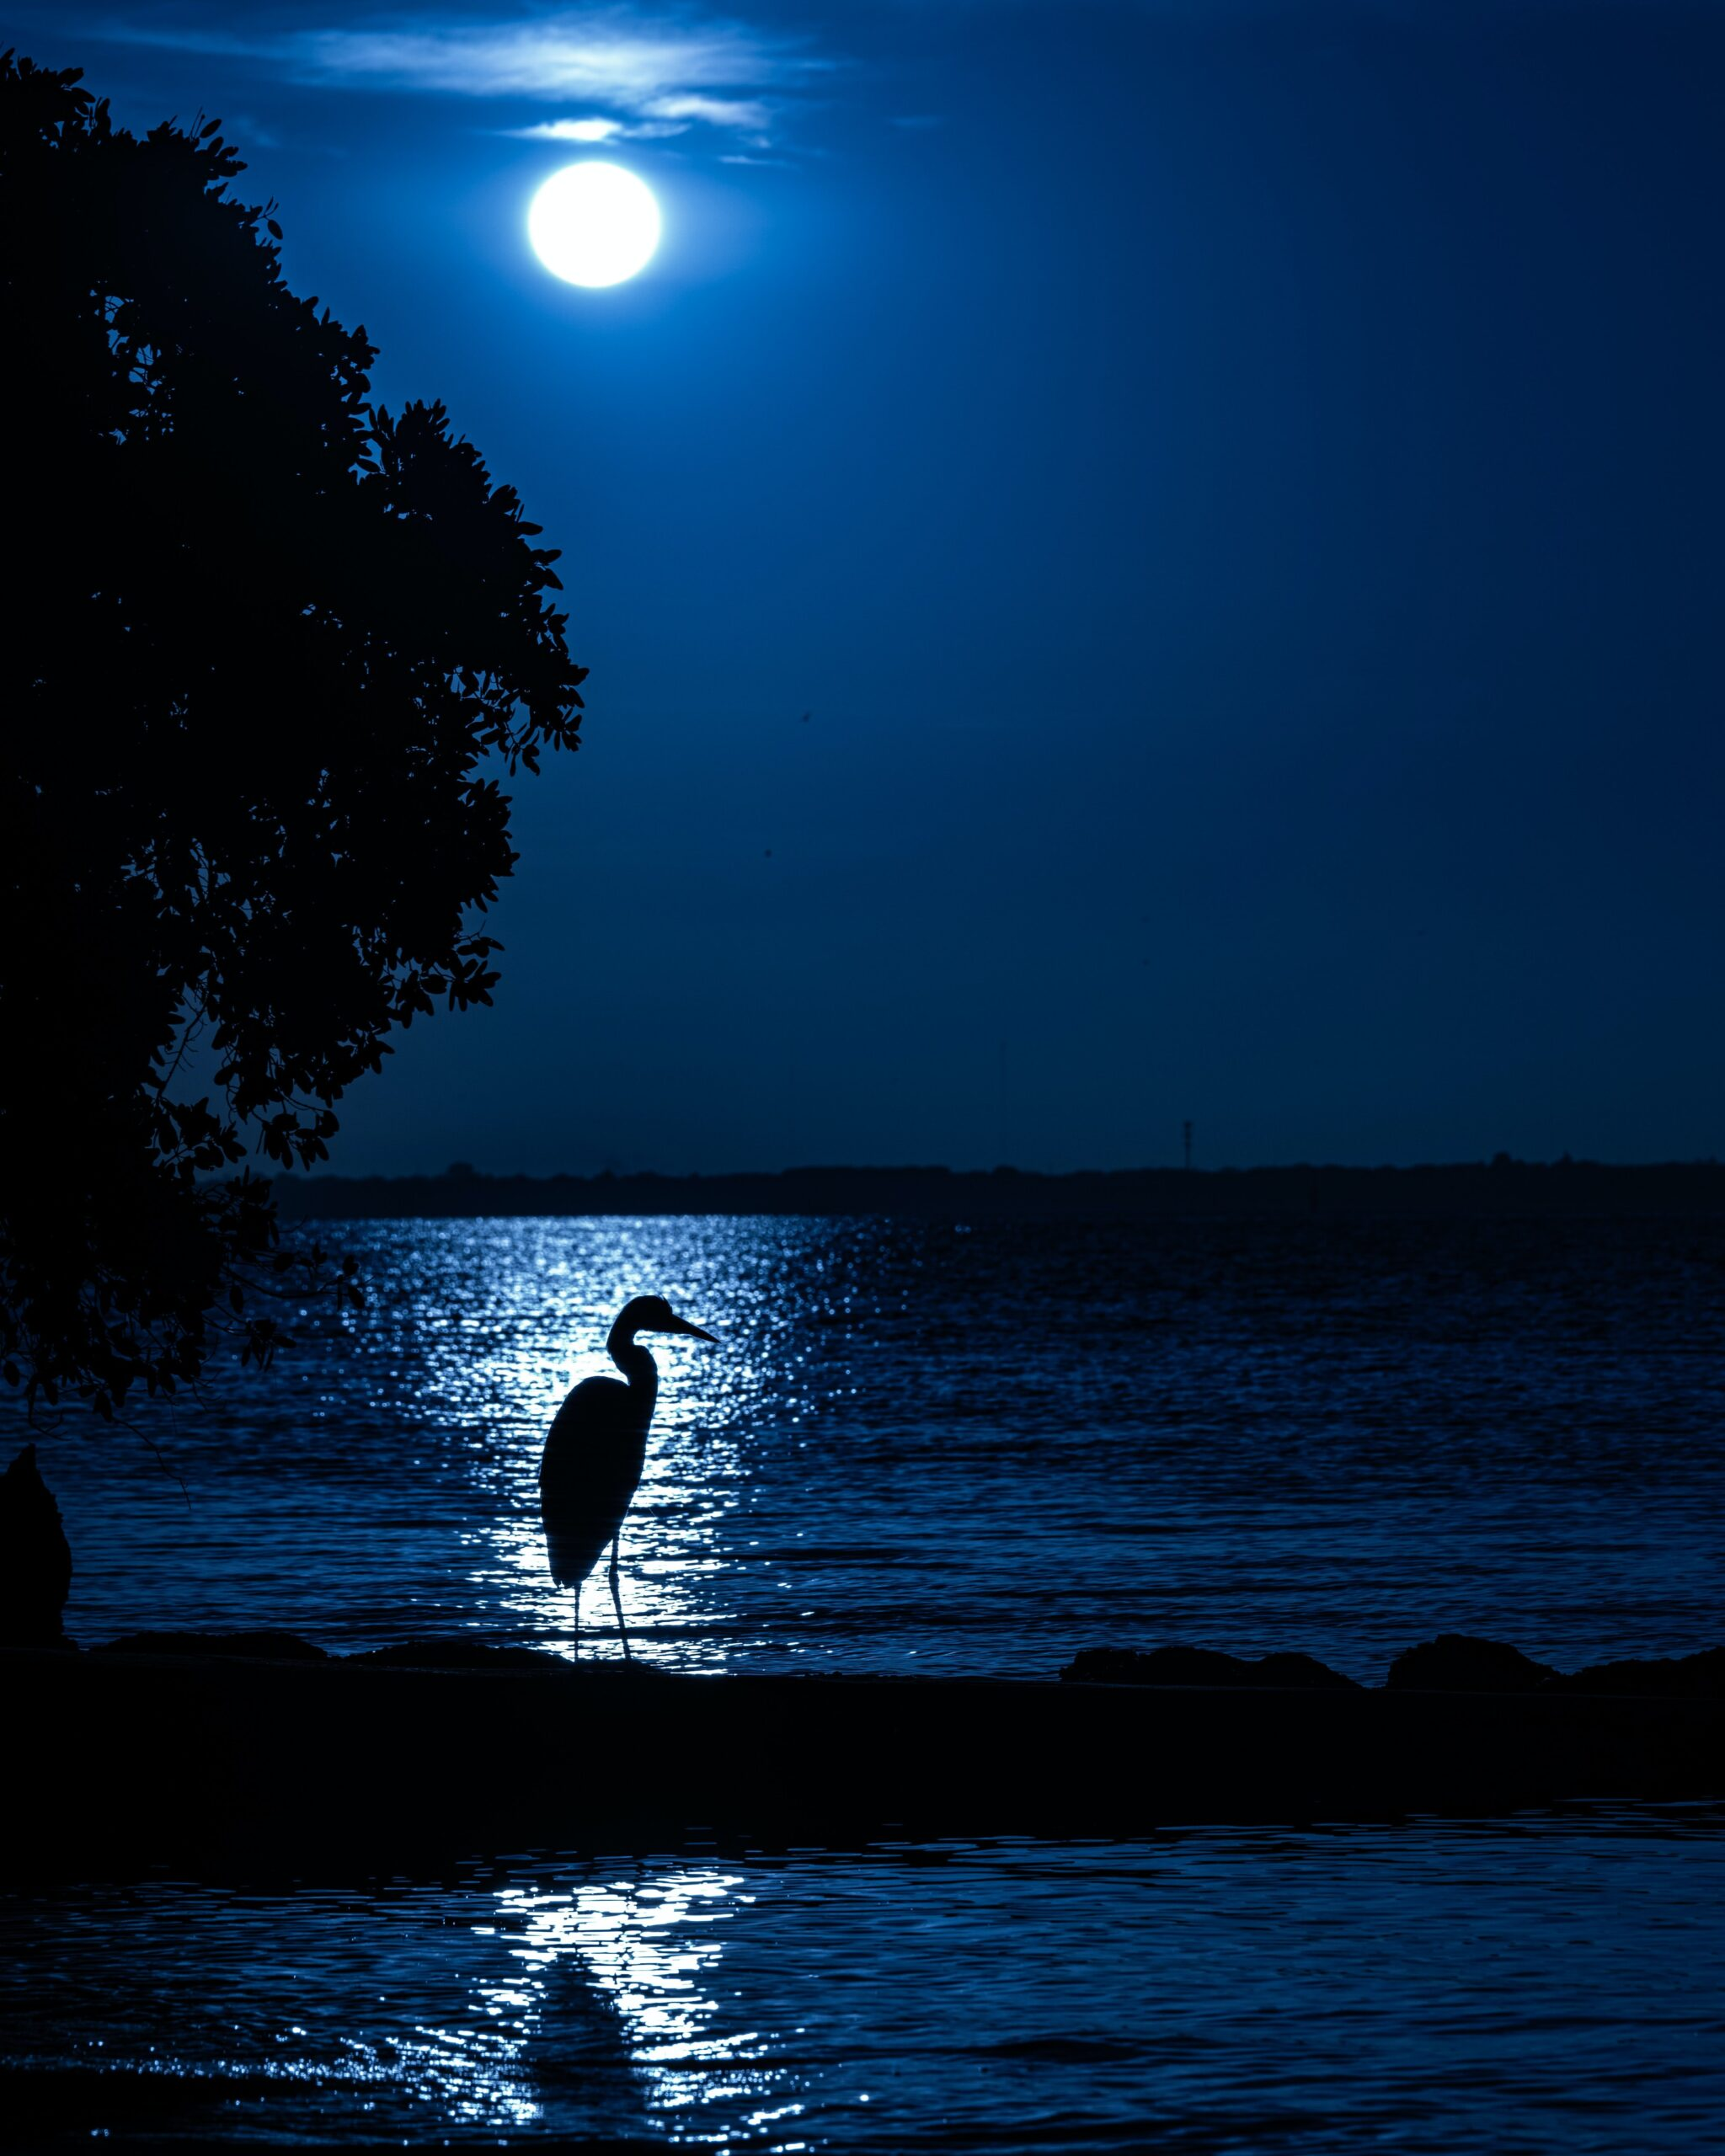 jesse-adair--GBH in foreground with backrground of night ocean moonlight over water-unsplash